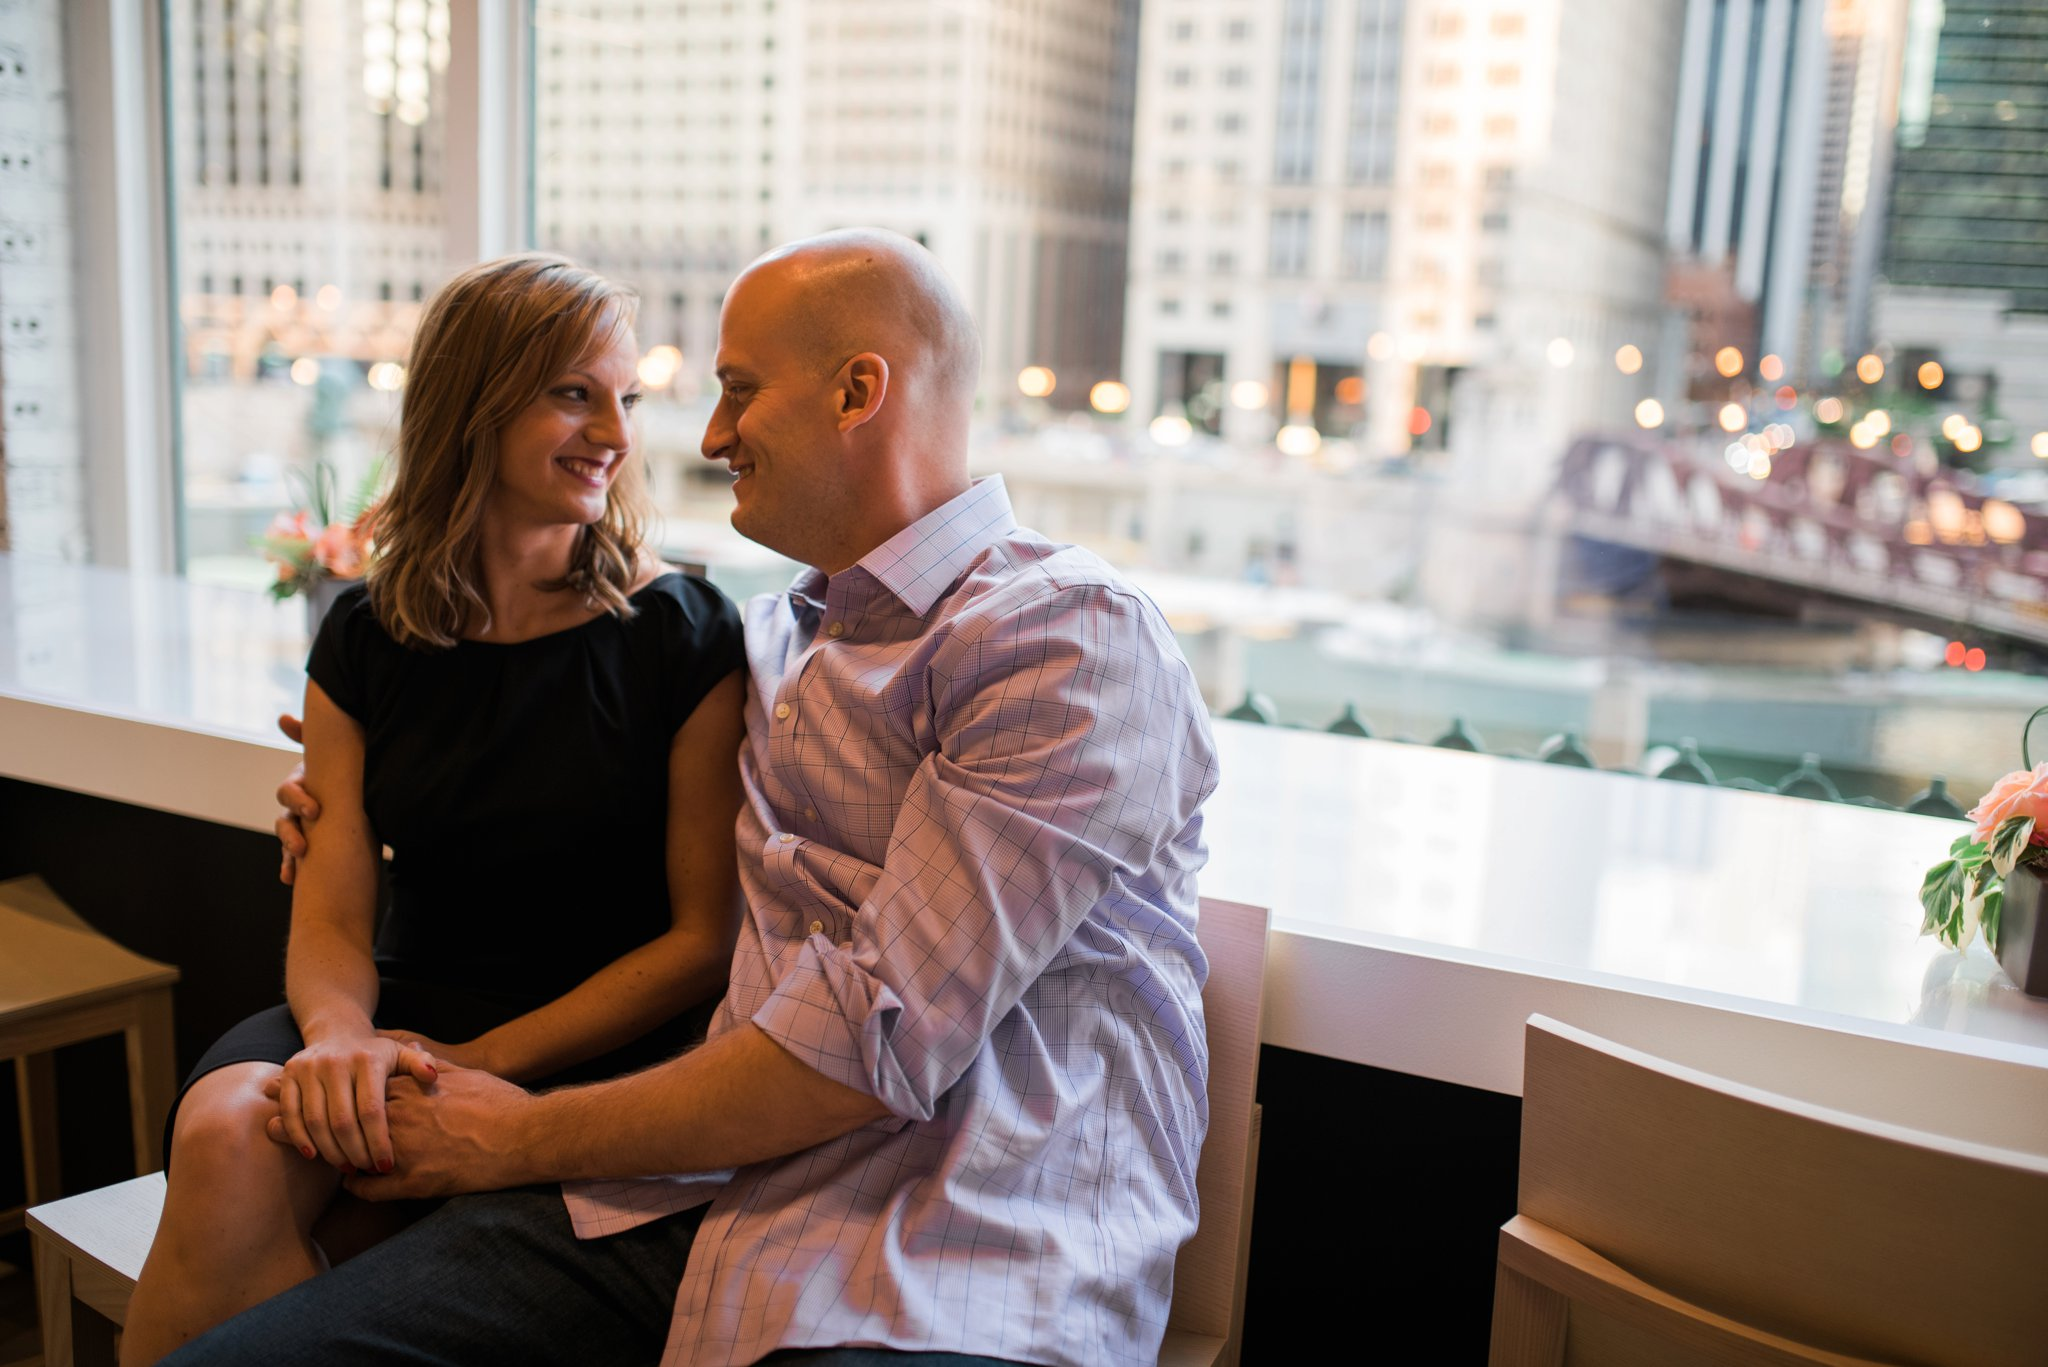 Downtown-Chicago-Loop-Wedding-Photography-042.jpg